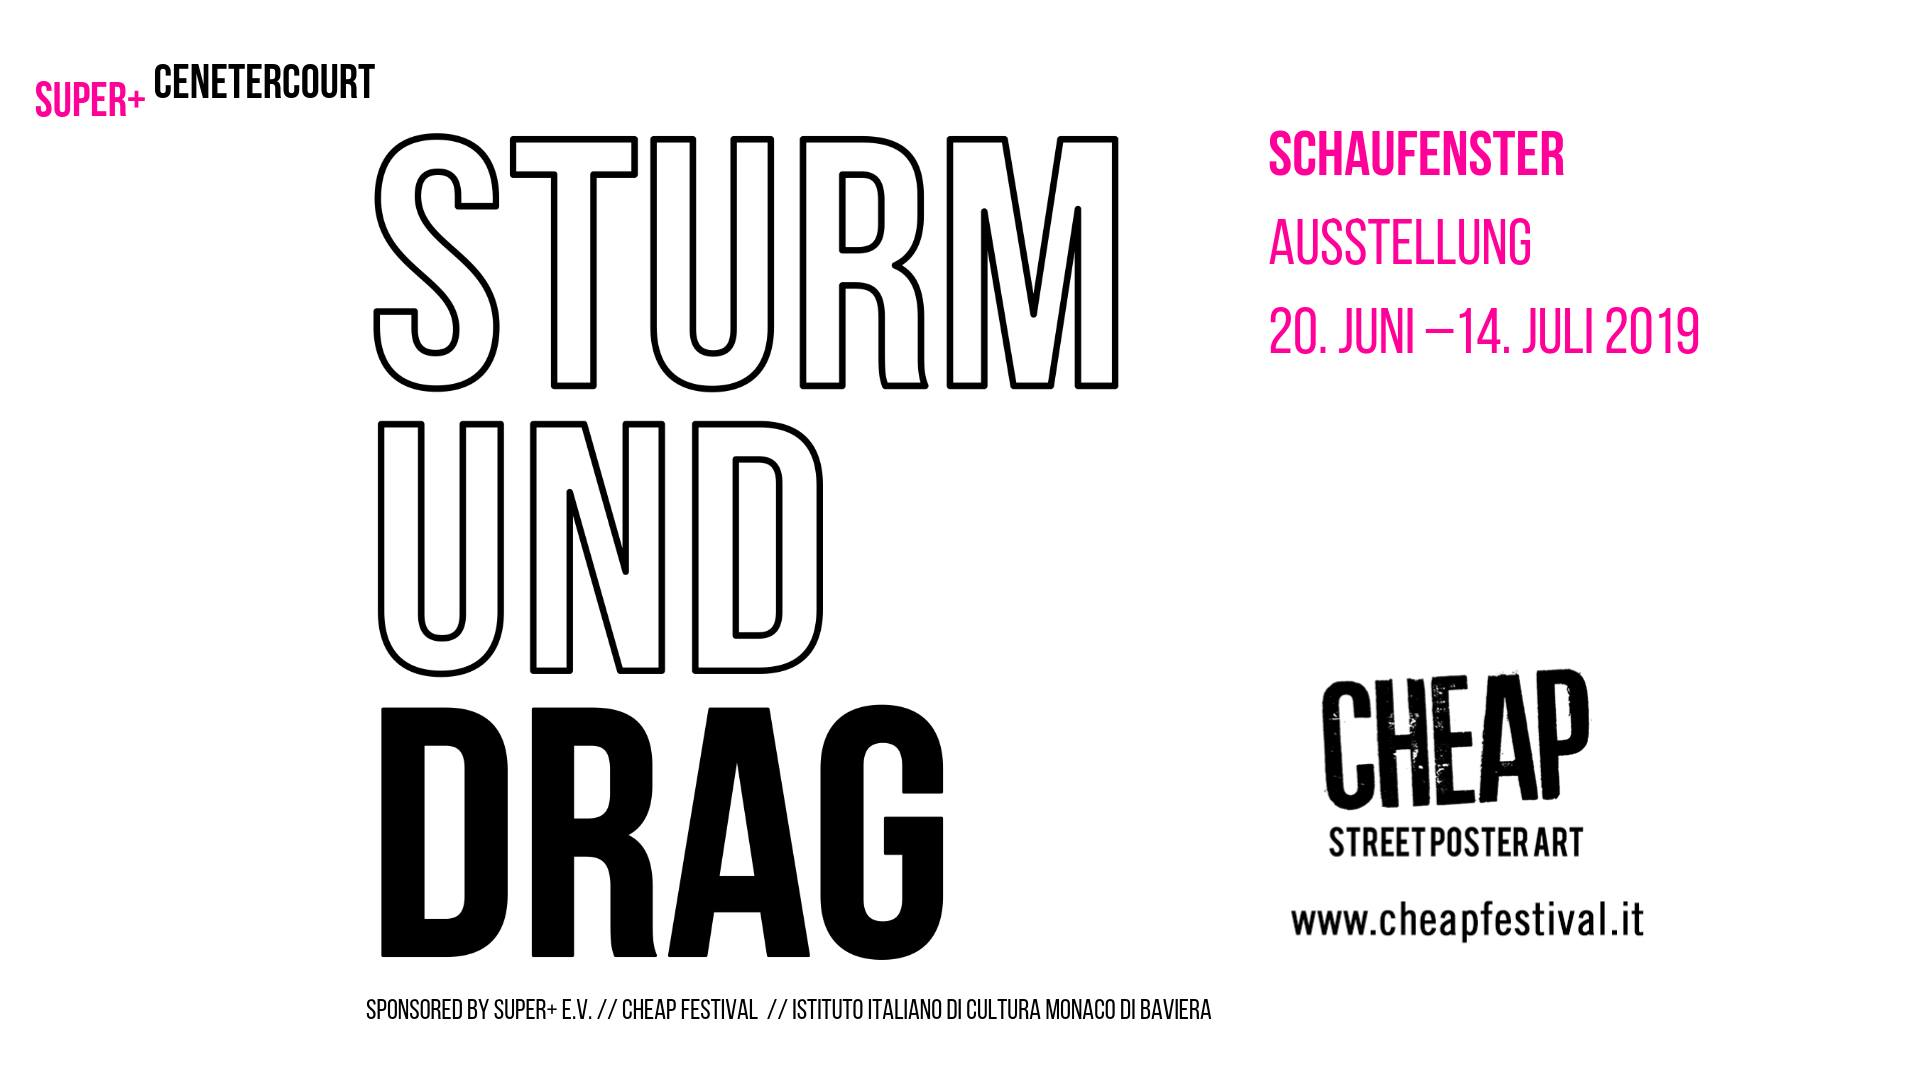 SuperCentercourtSTURM UND DRAG Cheap Festival in Kooperation mit superjpg